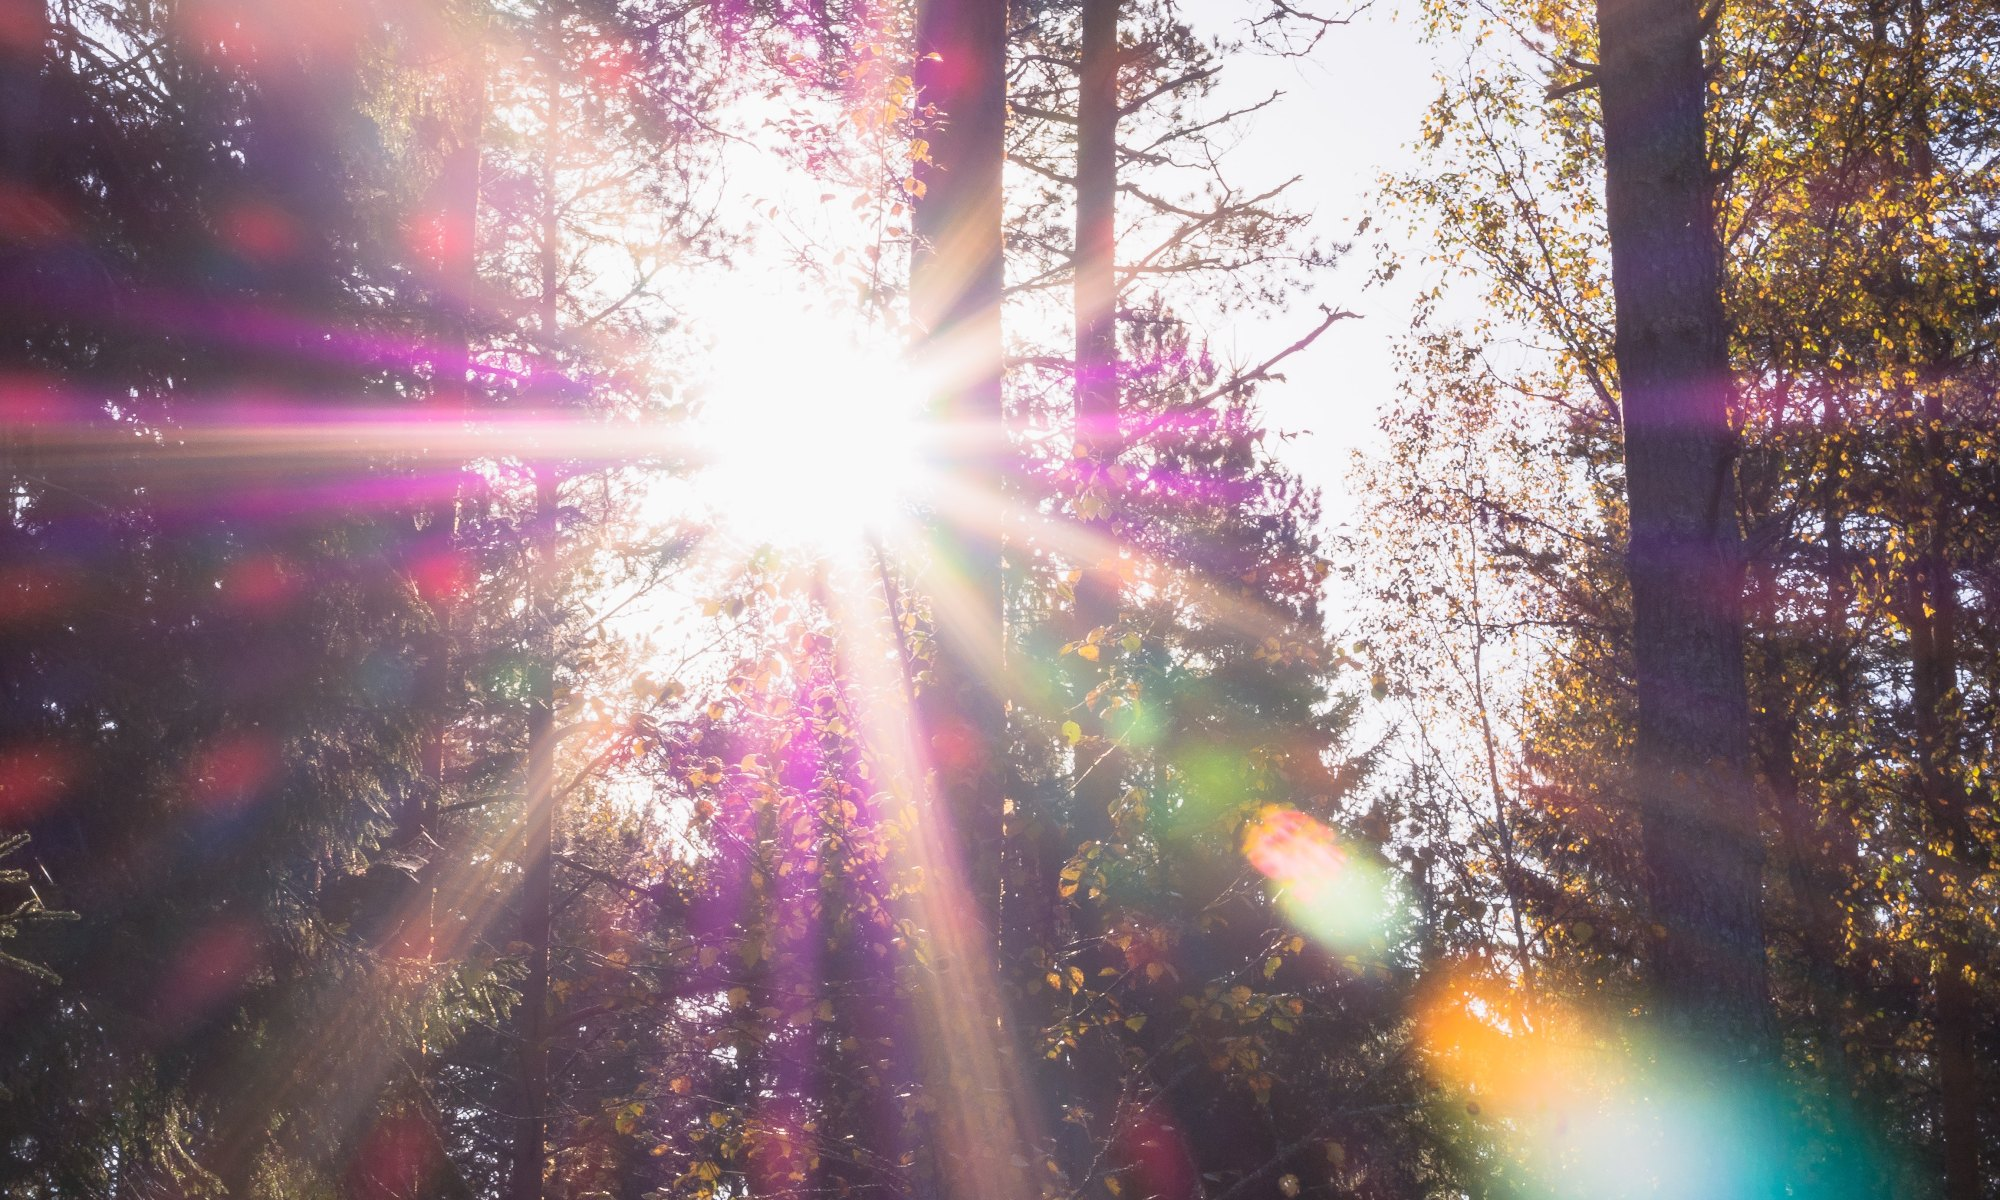 Forest with sunlight causing an addiction